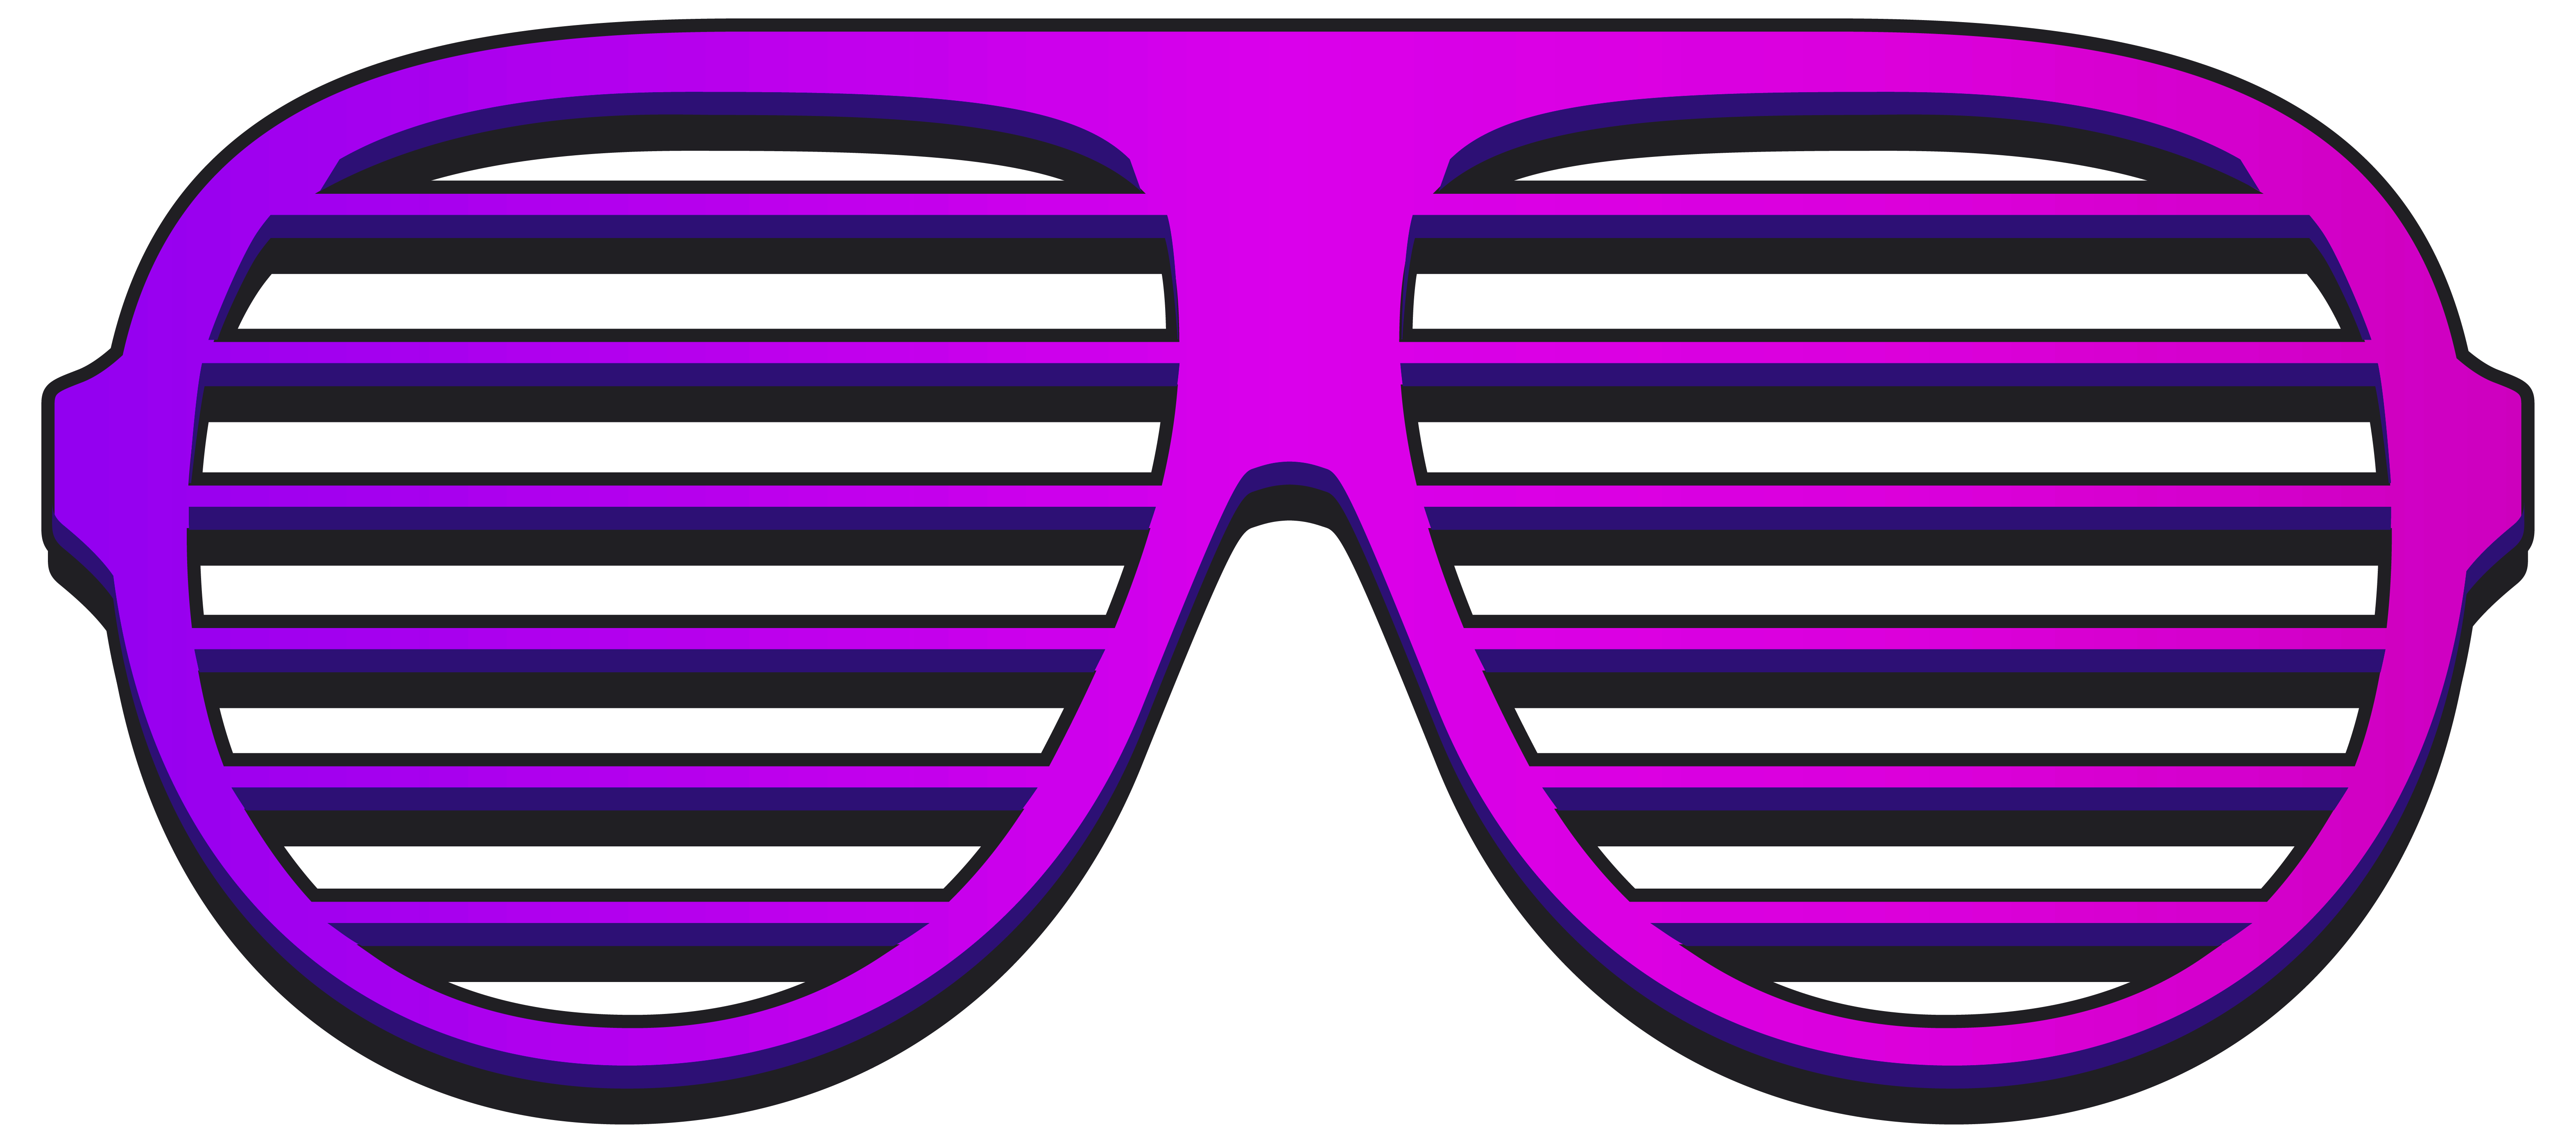 Cool Shutter Shades PNG Clipart Image.